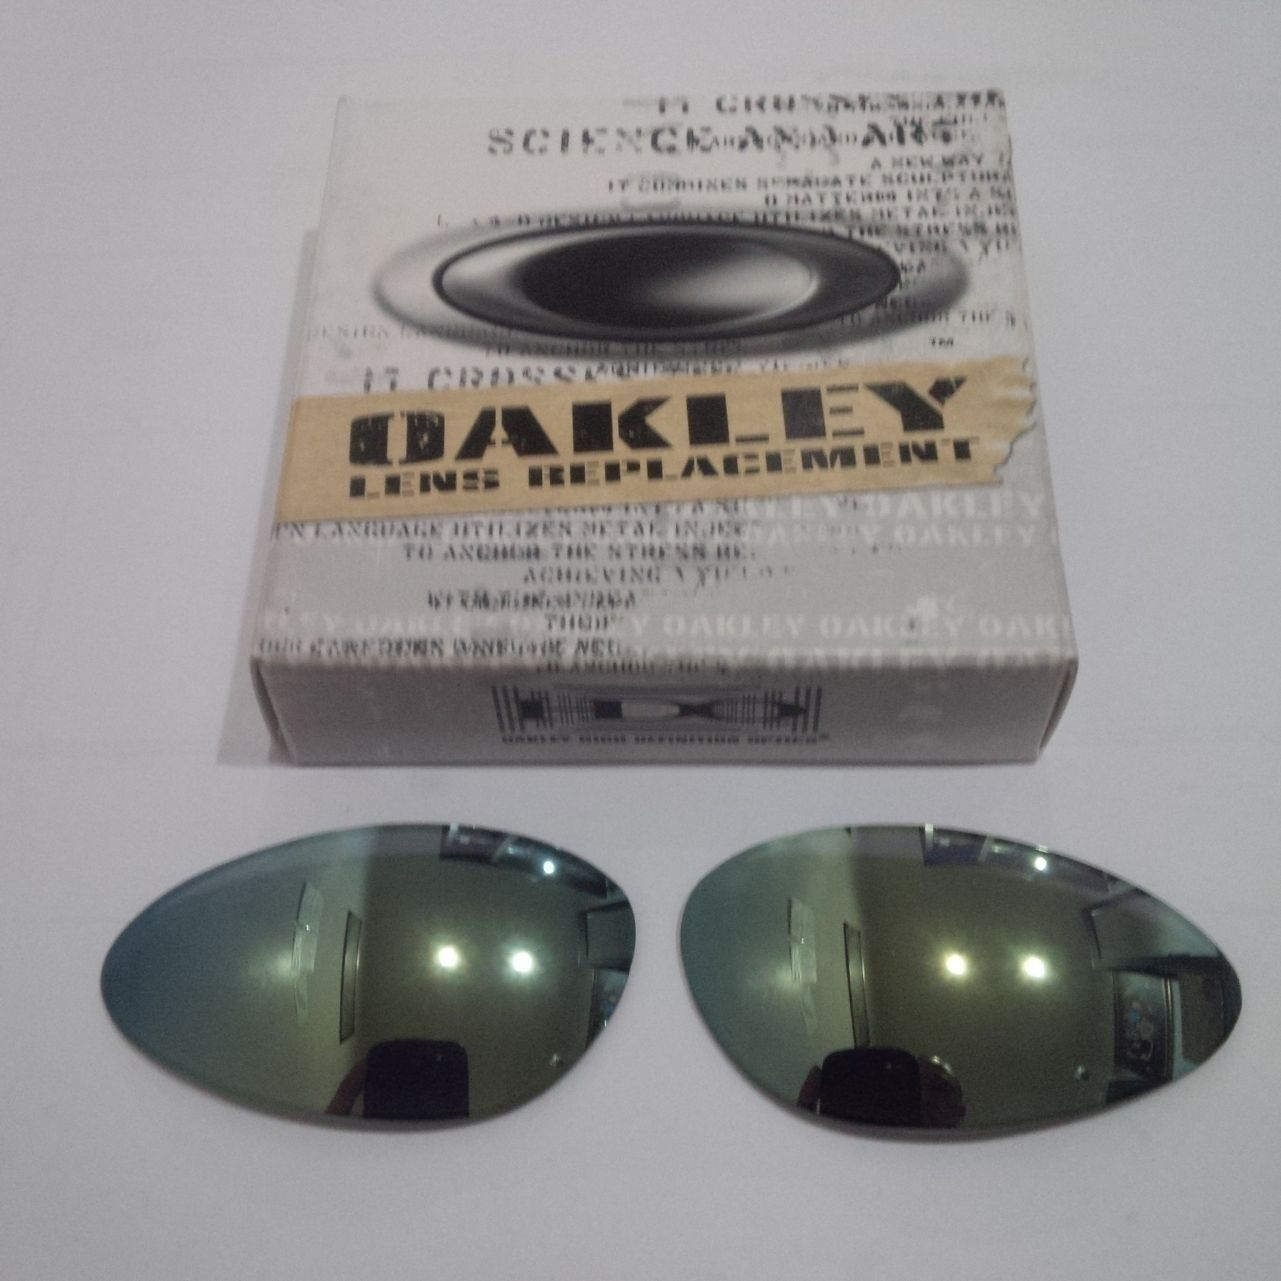 Custom cut replacement lens oakley donor for xmetals - IMG-20150709-WA0005.jpg